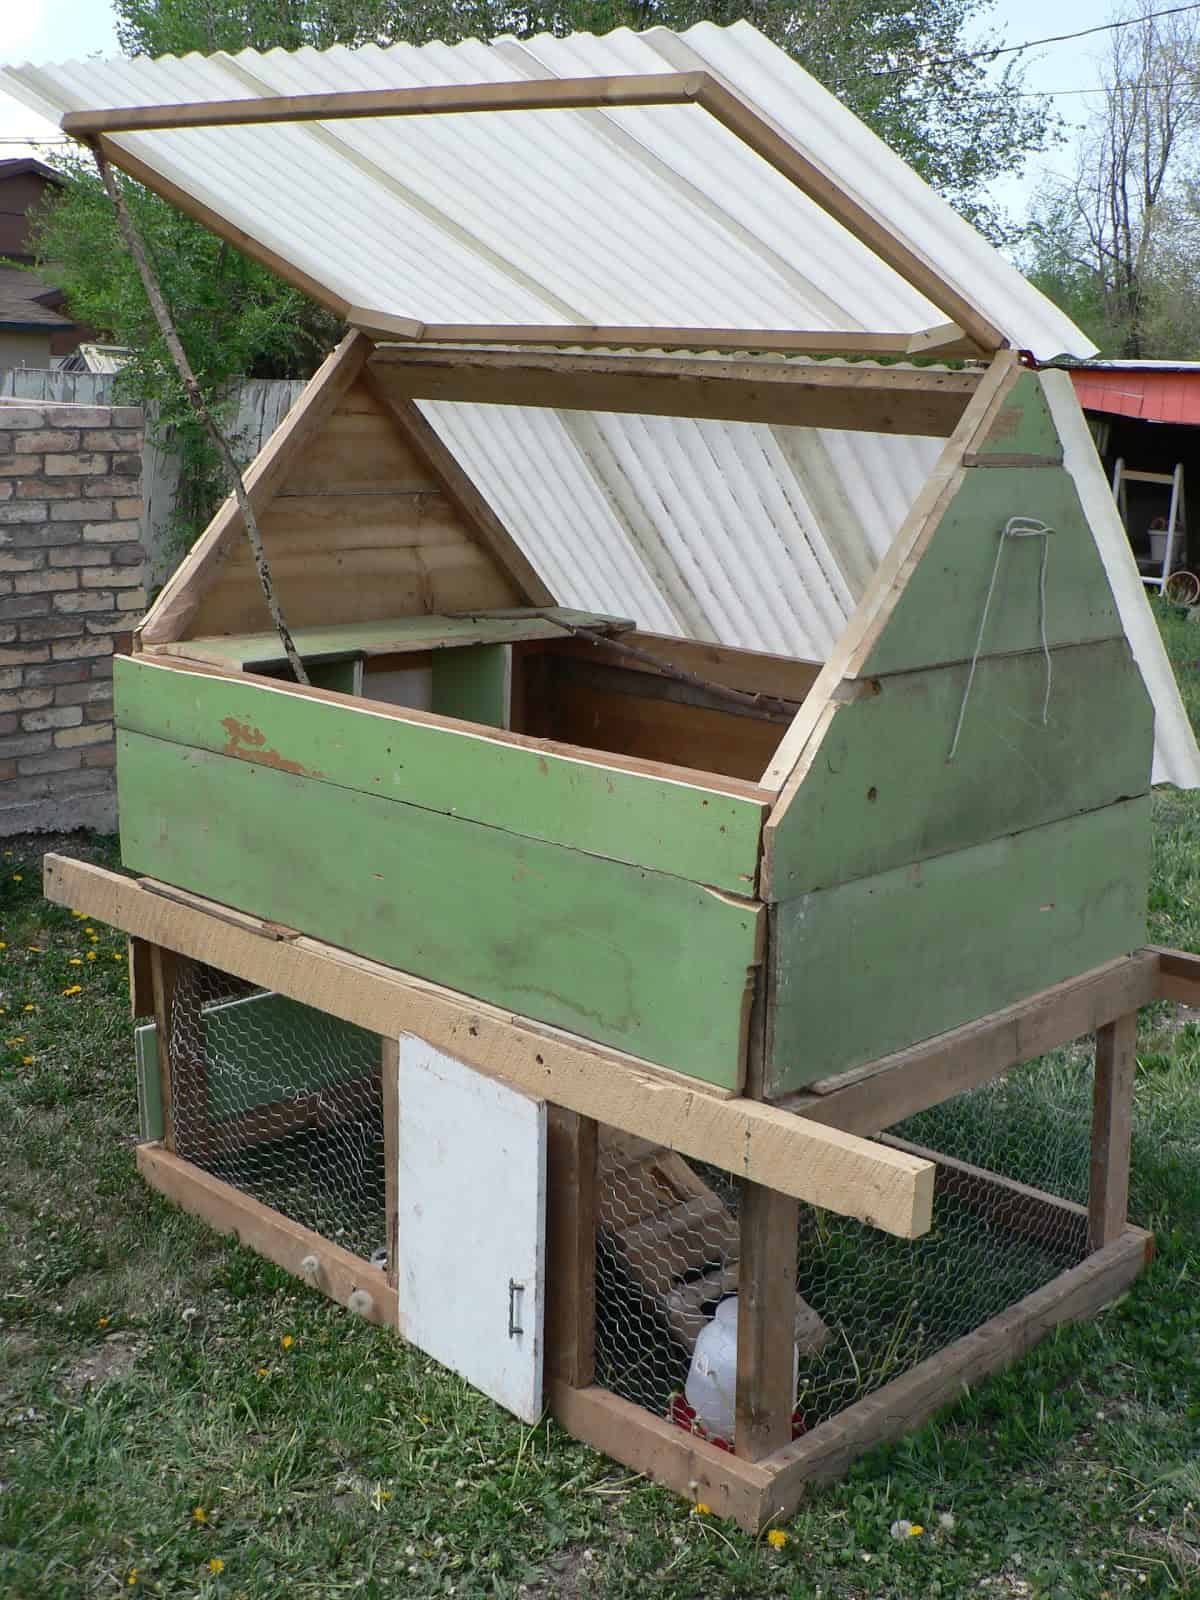 Short chicken coop with a lifting roof